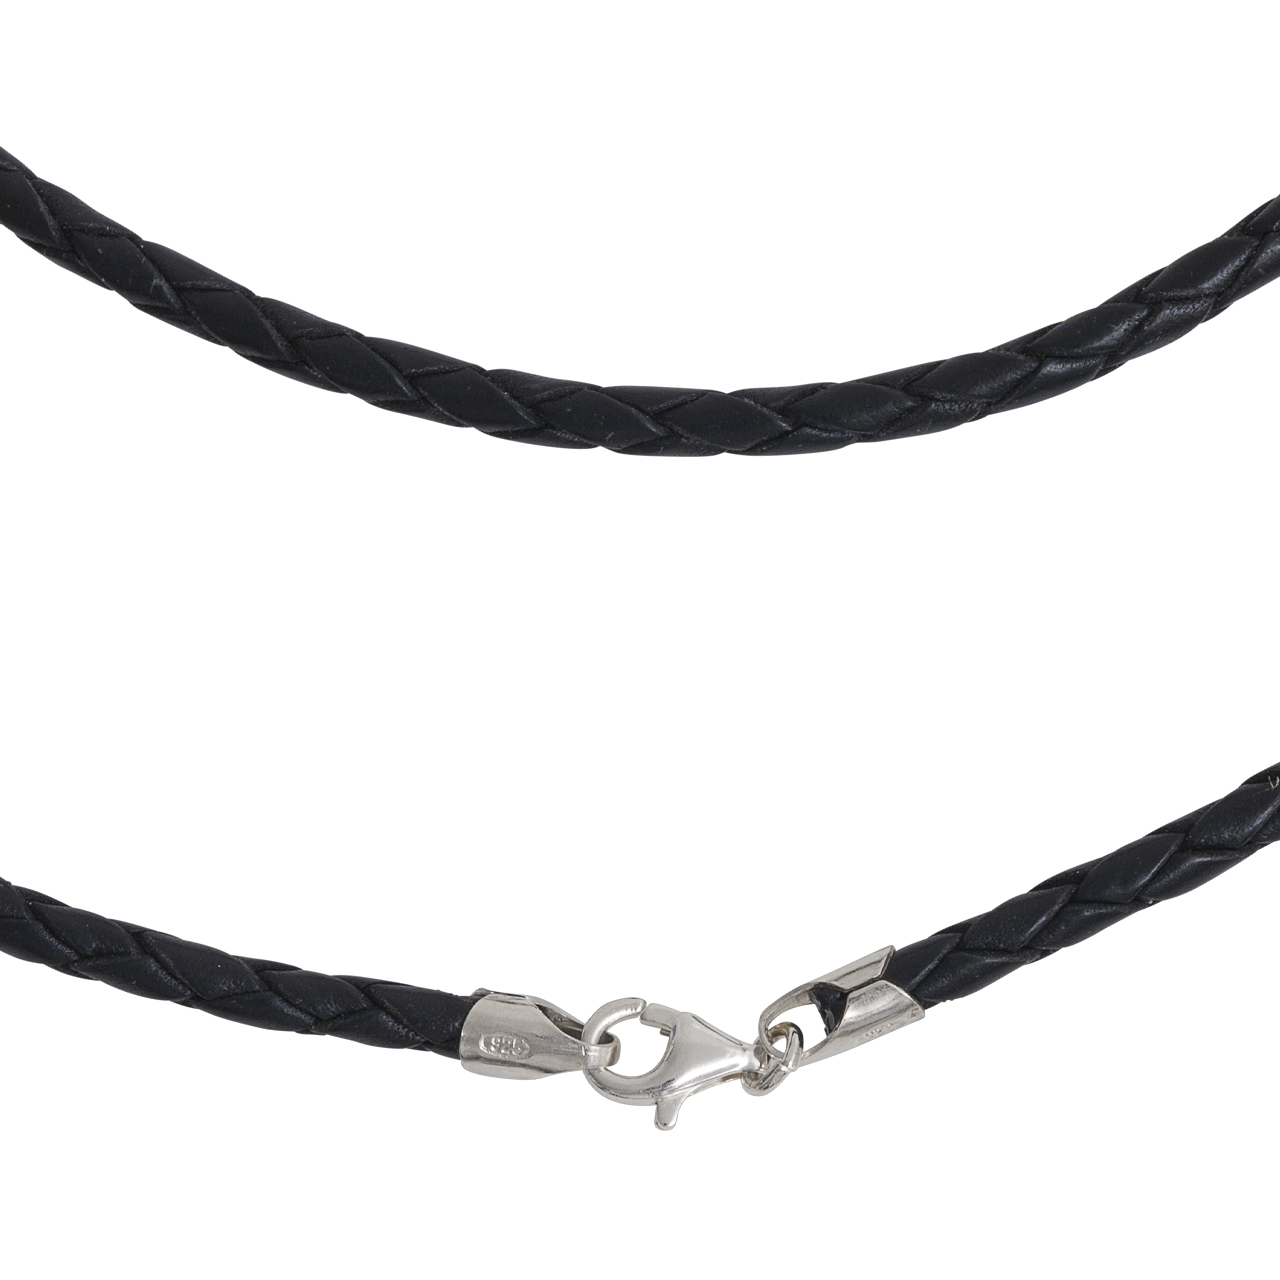 leather necklet 3mm with silver-fastener, 45cm